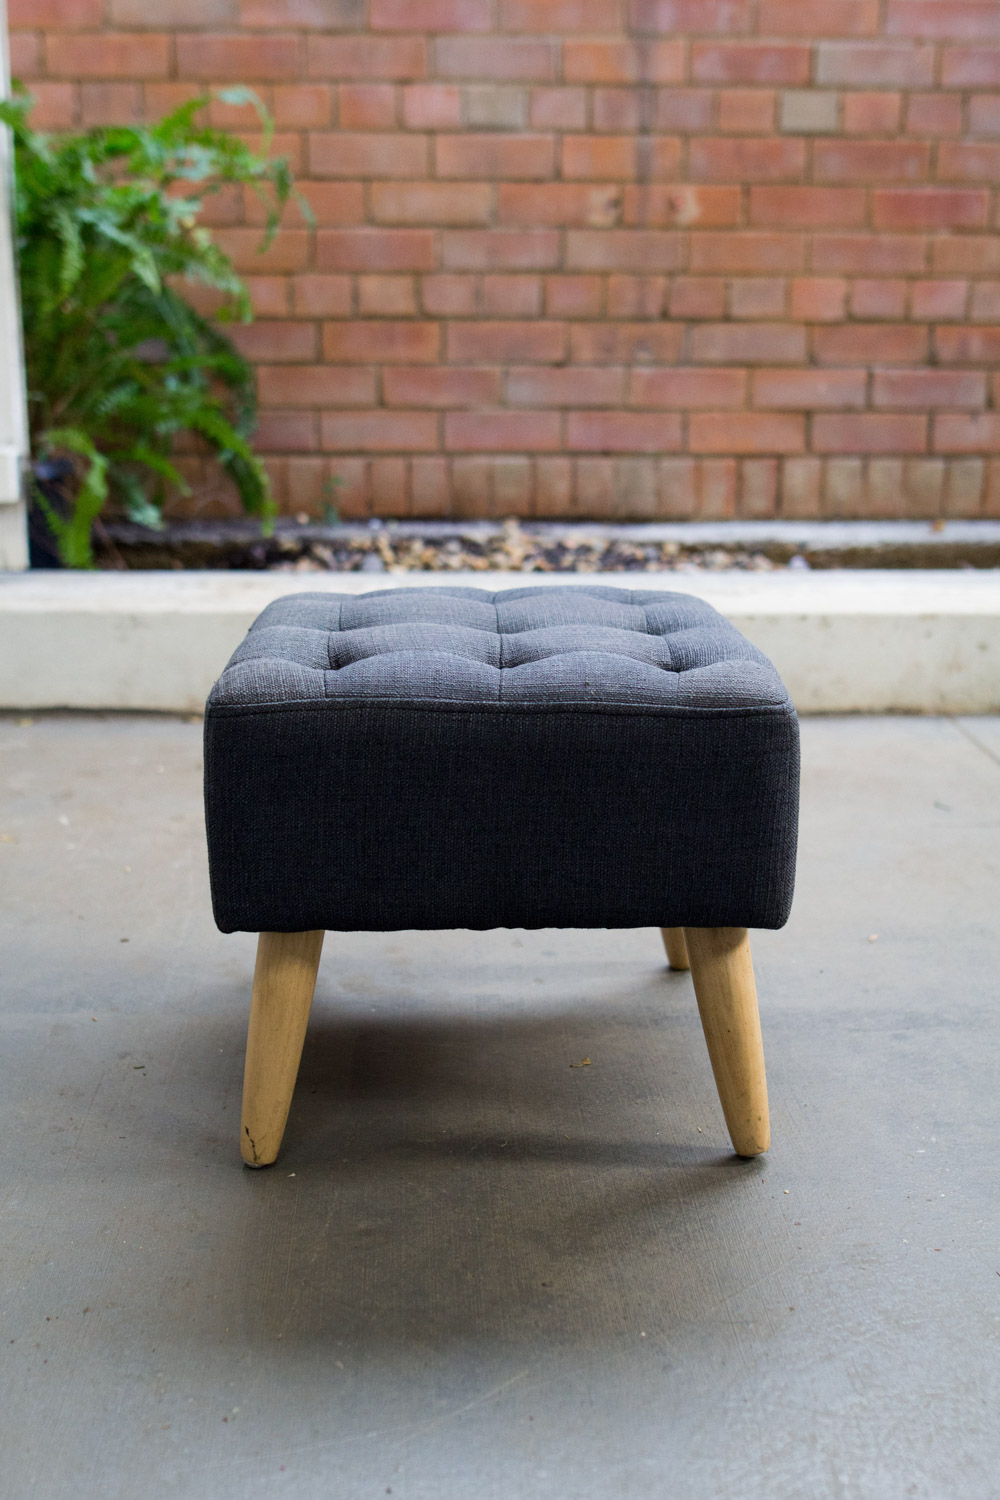 AVIDEAS-INVENTORY-Square Charcoal Ottoman.jpg